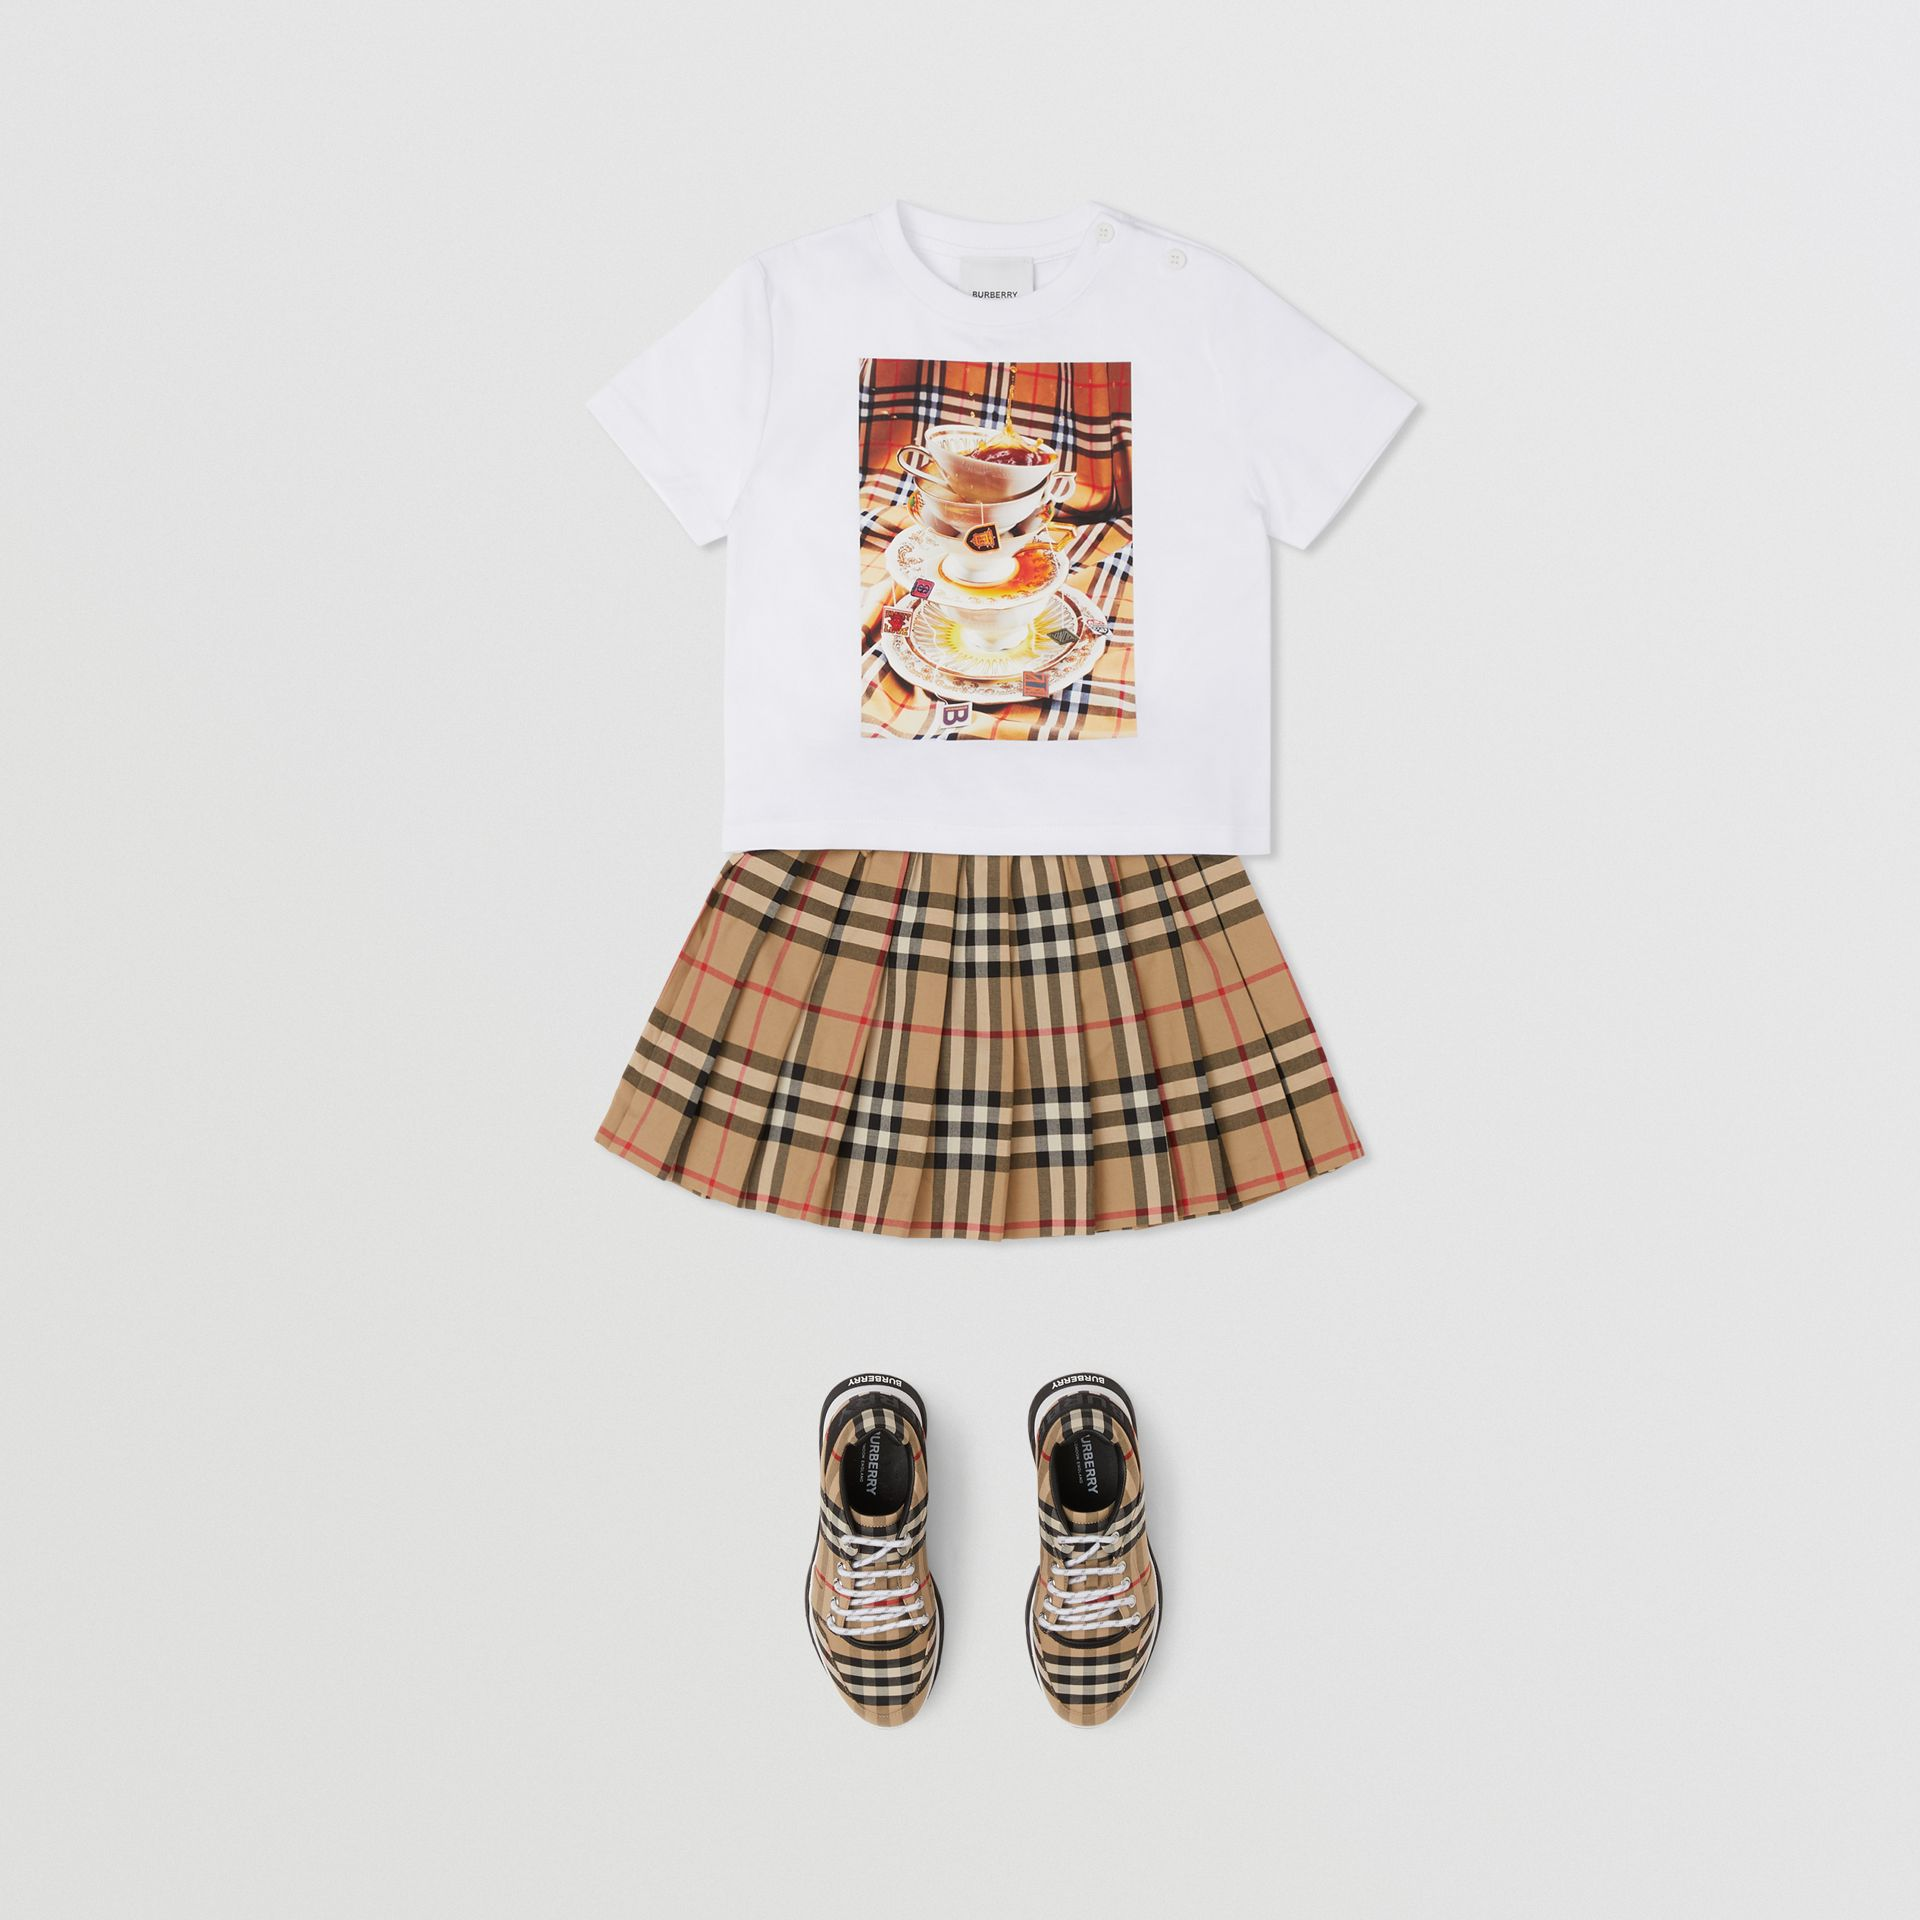 Teacup Print T-shirt in Multicolour - Children | Burberry Canada - gallery image 2